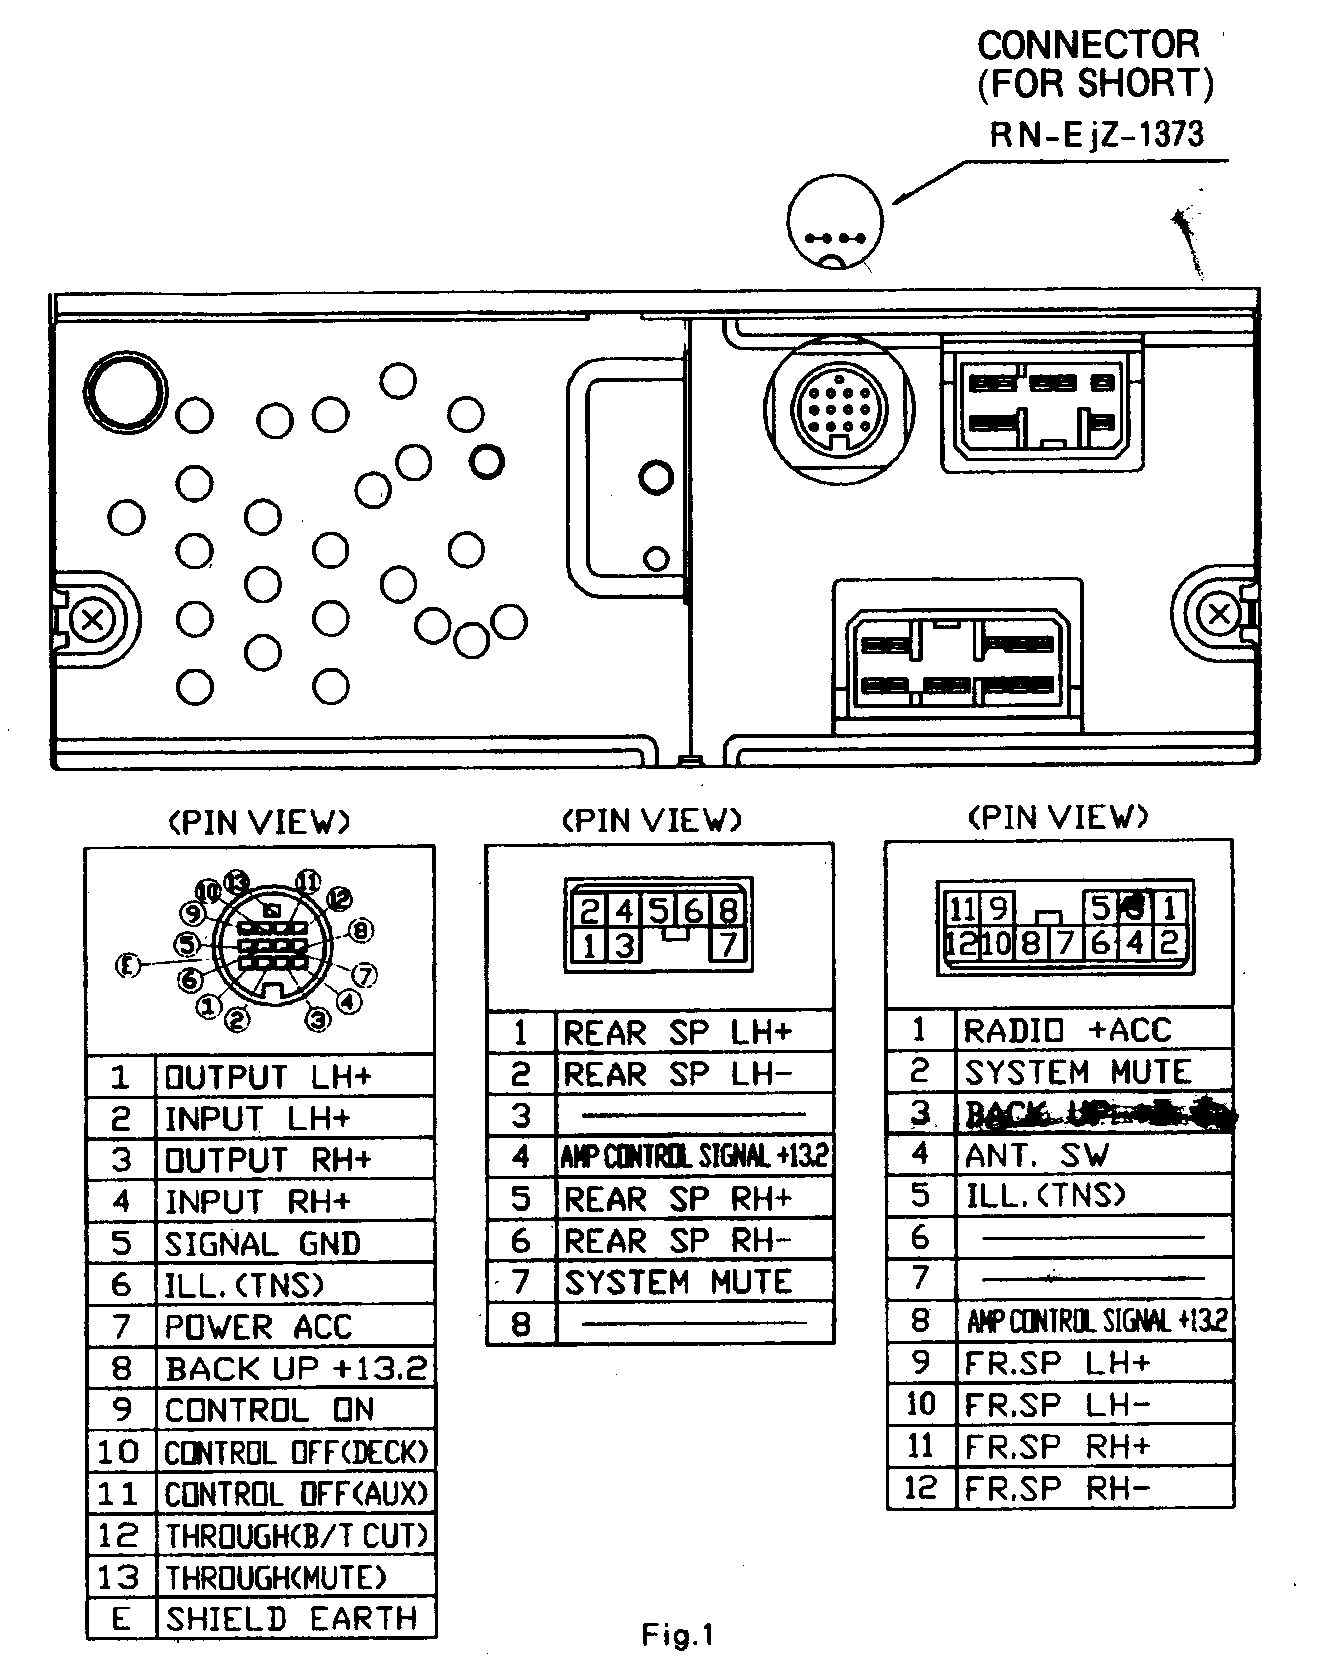 MAZDA Car Radio Wiring Connector on 2005 Gmc Denali Wiring Diagram